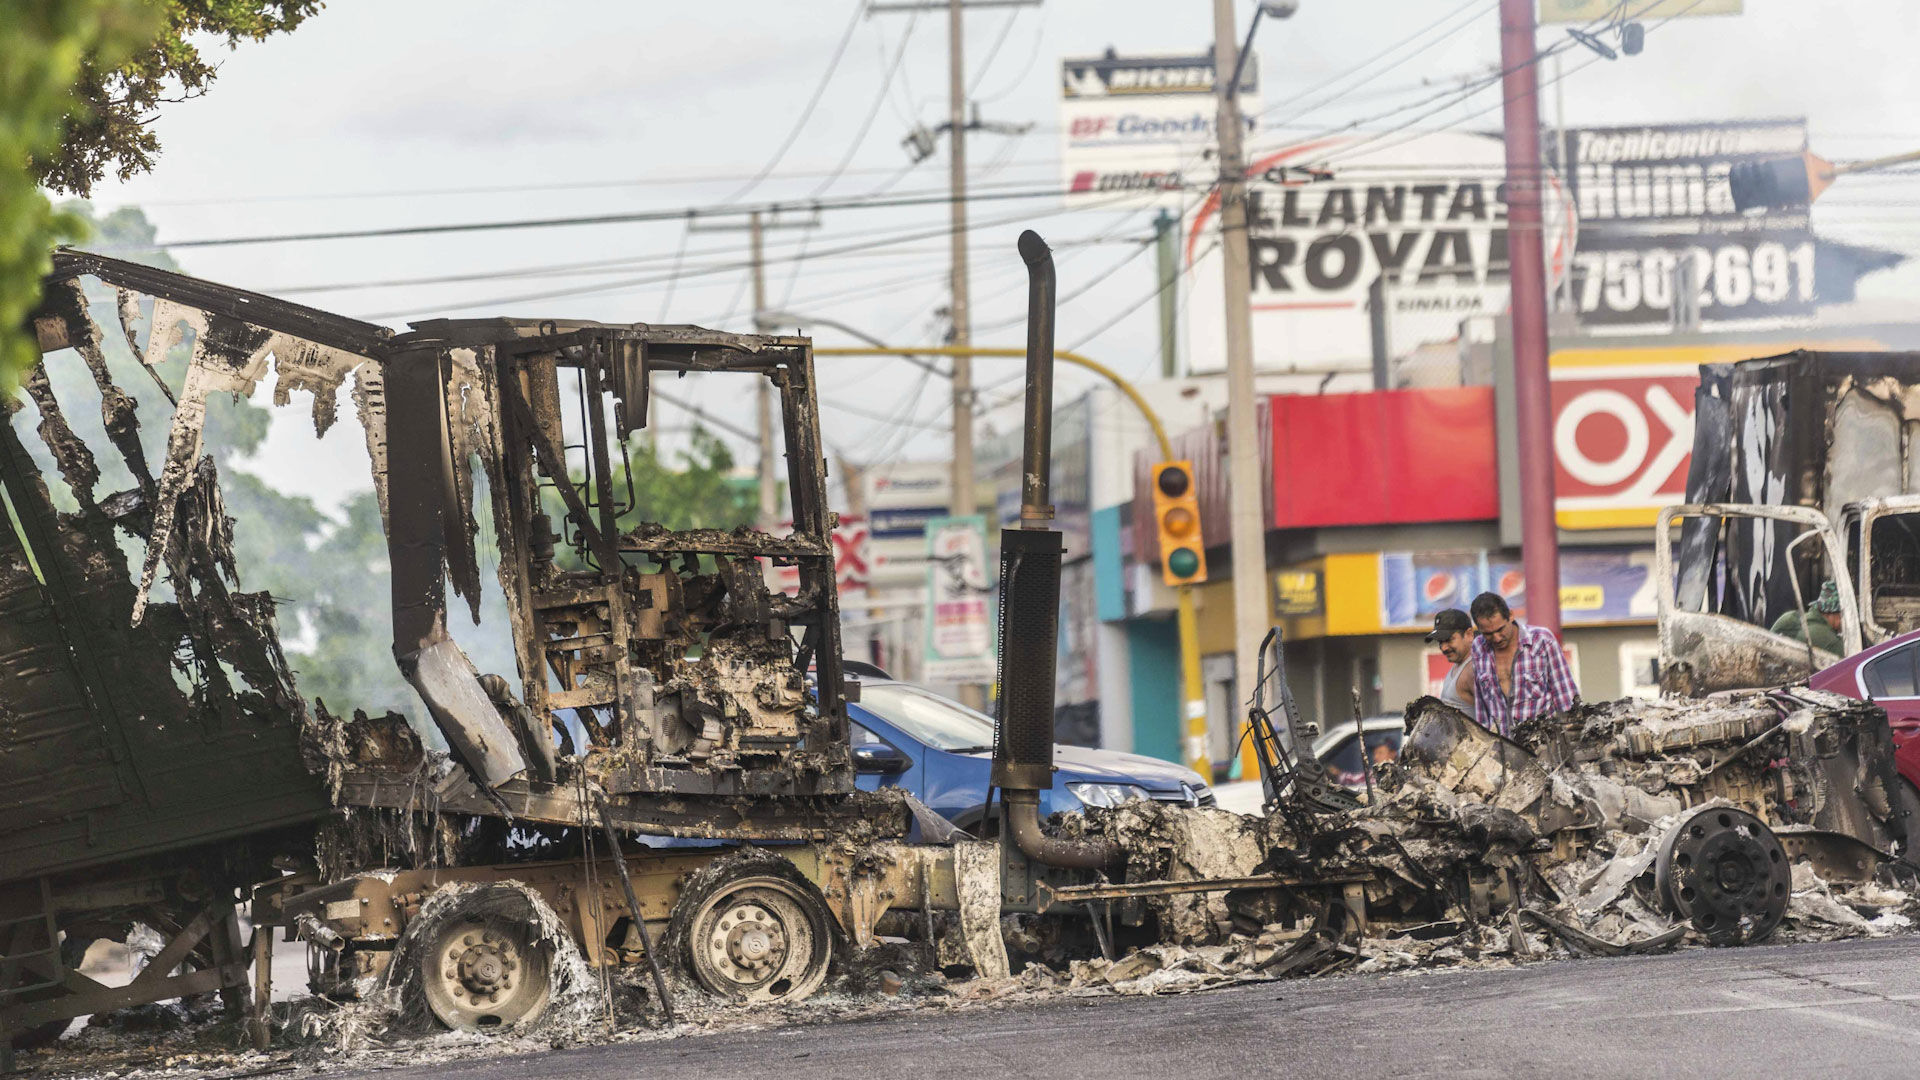 "A burnt out semi truck used by gunmen smolders on an intersection, a day after street battles between gunmen and security forces in Culiacan, Mexico, Friday Oct. 18, 2019. Mexican security forces backed off an attempt to capture a son of imprisoned drug lord Joaquin ""El Chapo"" Guzman after finding themselves outgunned in a ferocious shootout with cartel enforcers that left at least eight people dead and more than 20 wounded, authorities said."